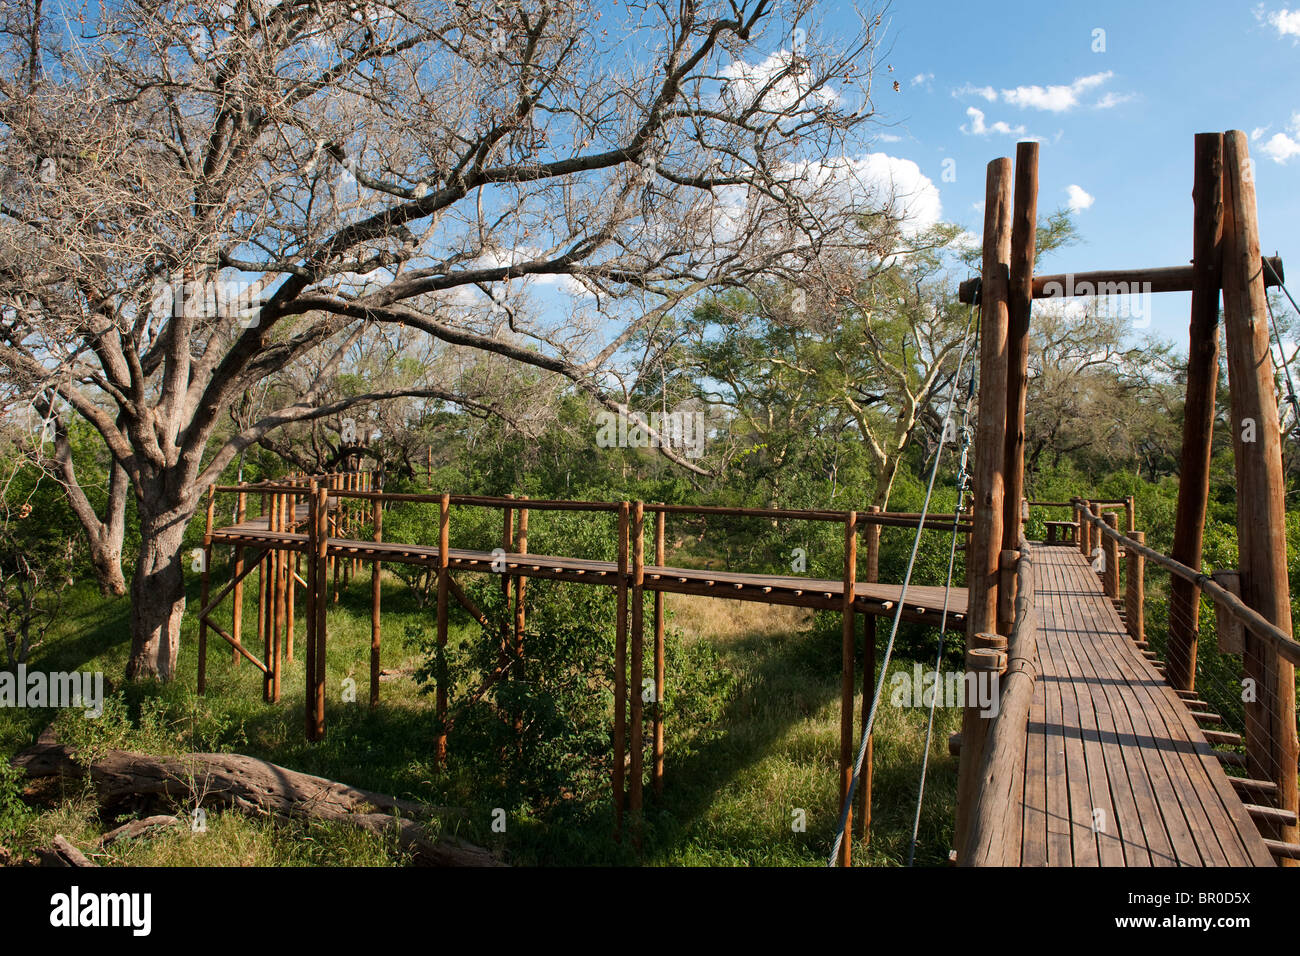 Treetop walk, le Parc National de Mapungubwe, Afrique du Sud Photo Stock